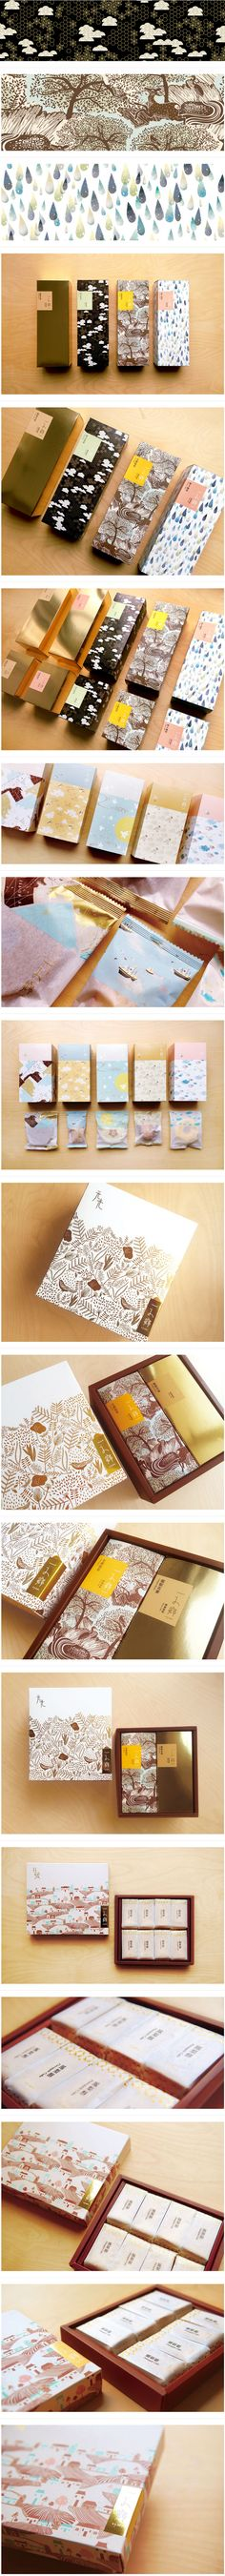 E-g-sain台湾一之乡品牌设计 非常... Very pretty collection of packaging PD